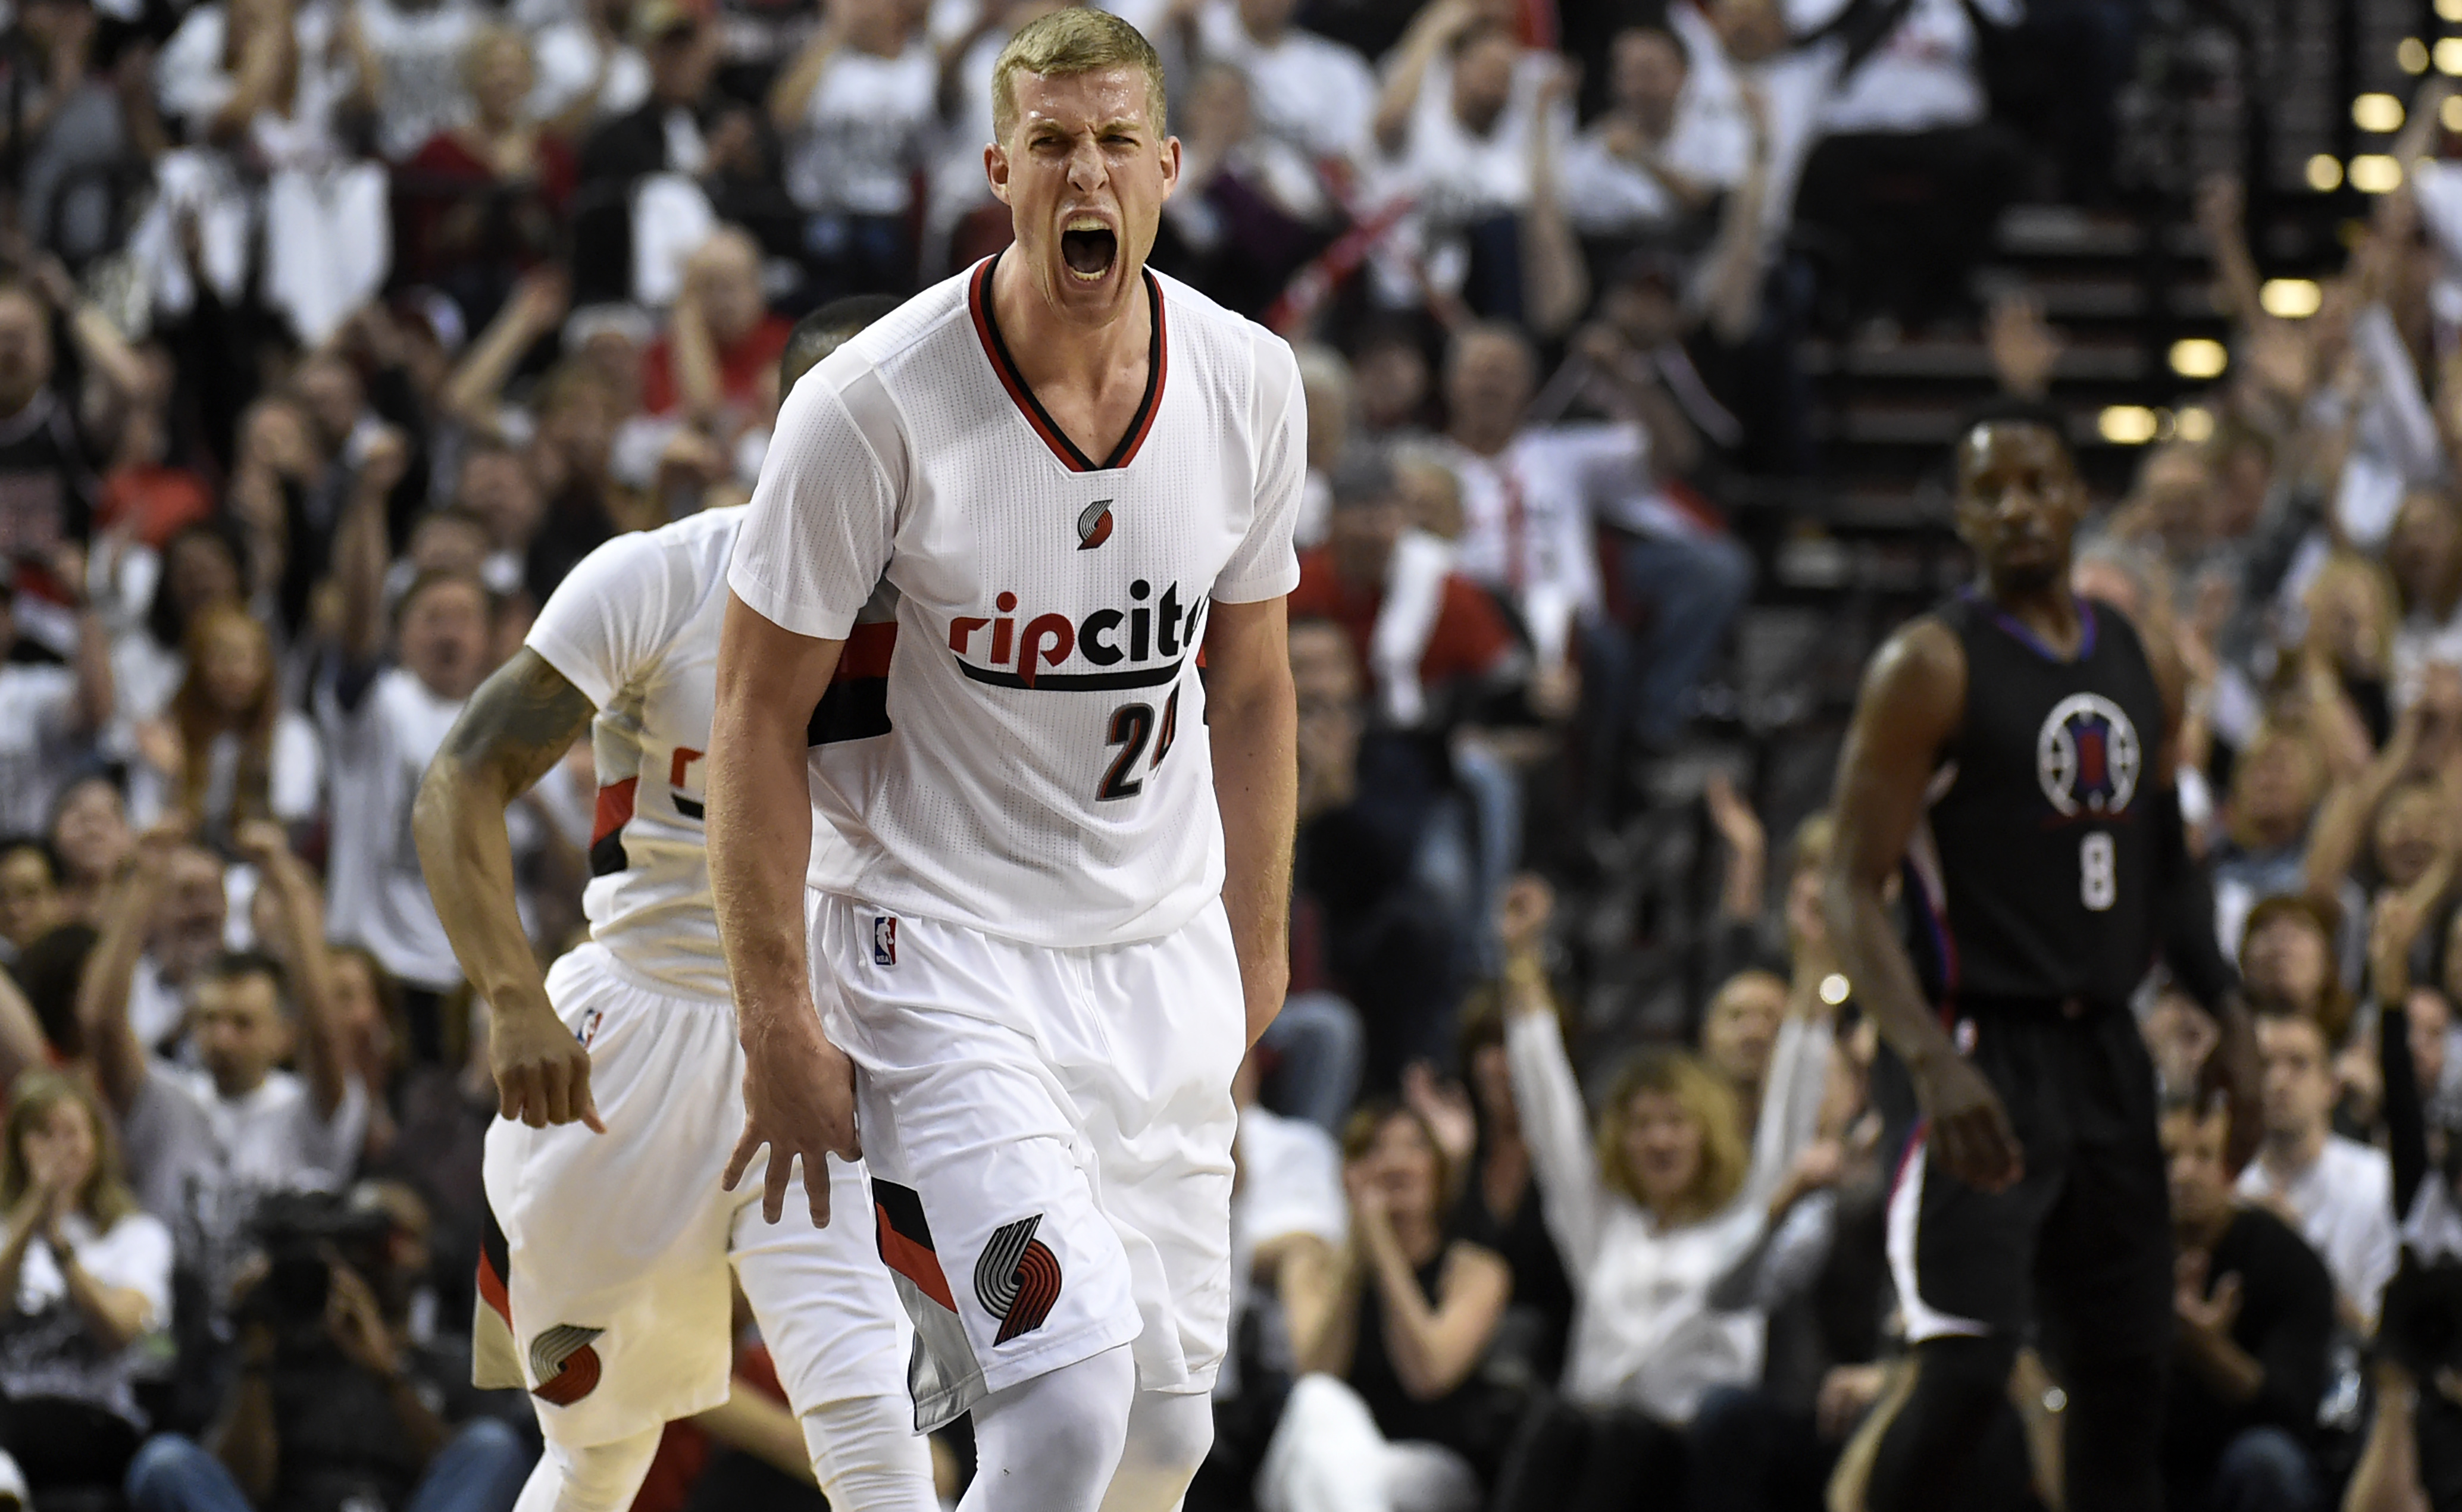 *** BESTPIX *** PORTLAND, OR - APRIL 29: Mason Plumlee #24 of the Portland Trail Blazers celebrates after his teammate scores in the first quarter of Game Six of the Western Conference Quarterfinals against the Los Angeles Clippers during the 2016 NBA Pla